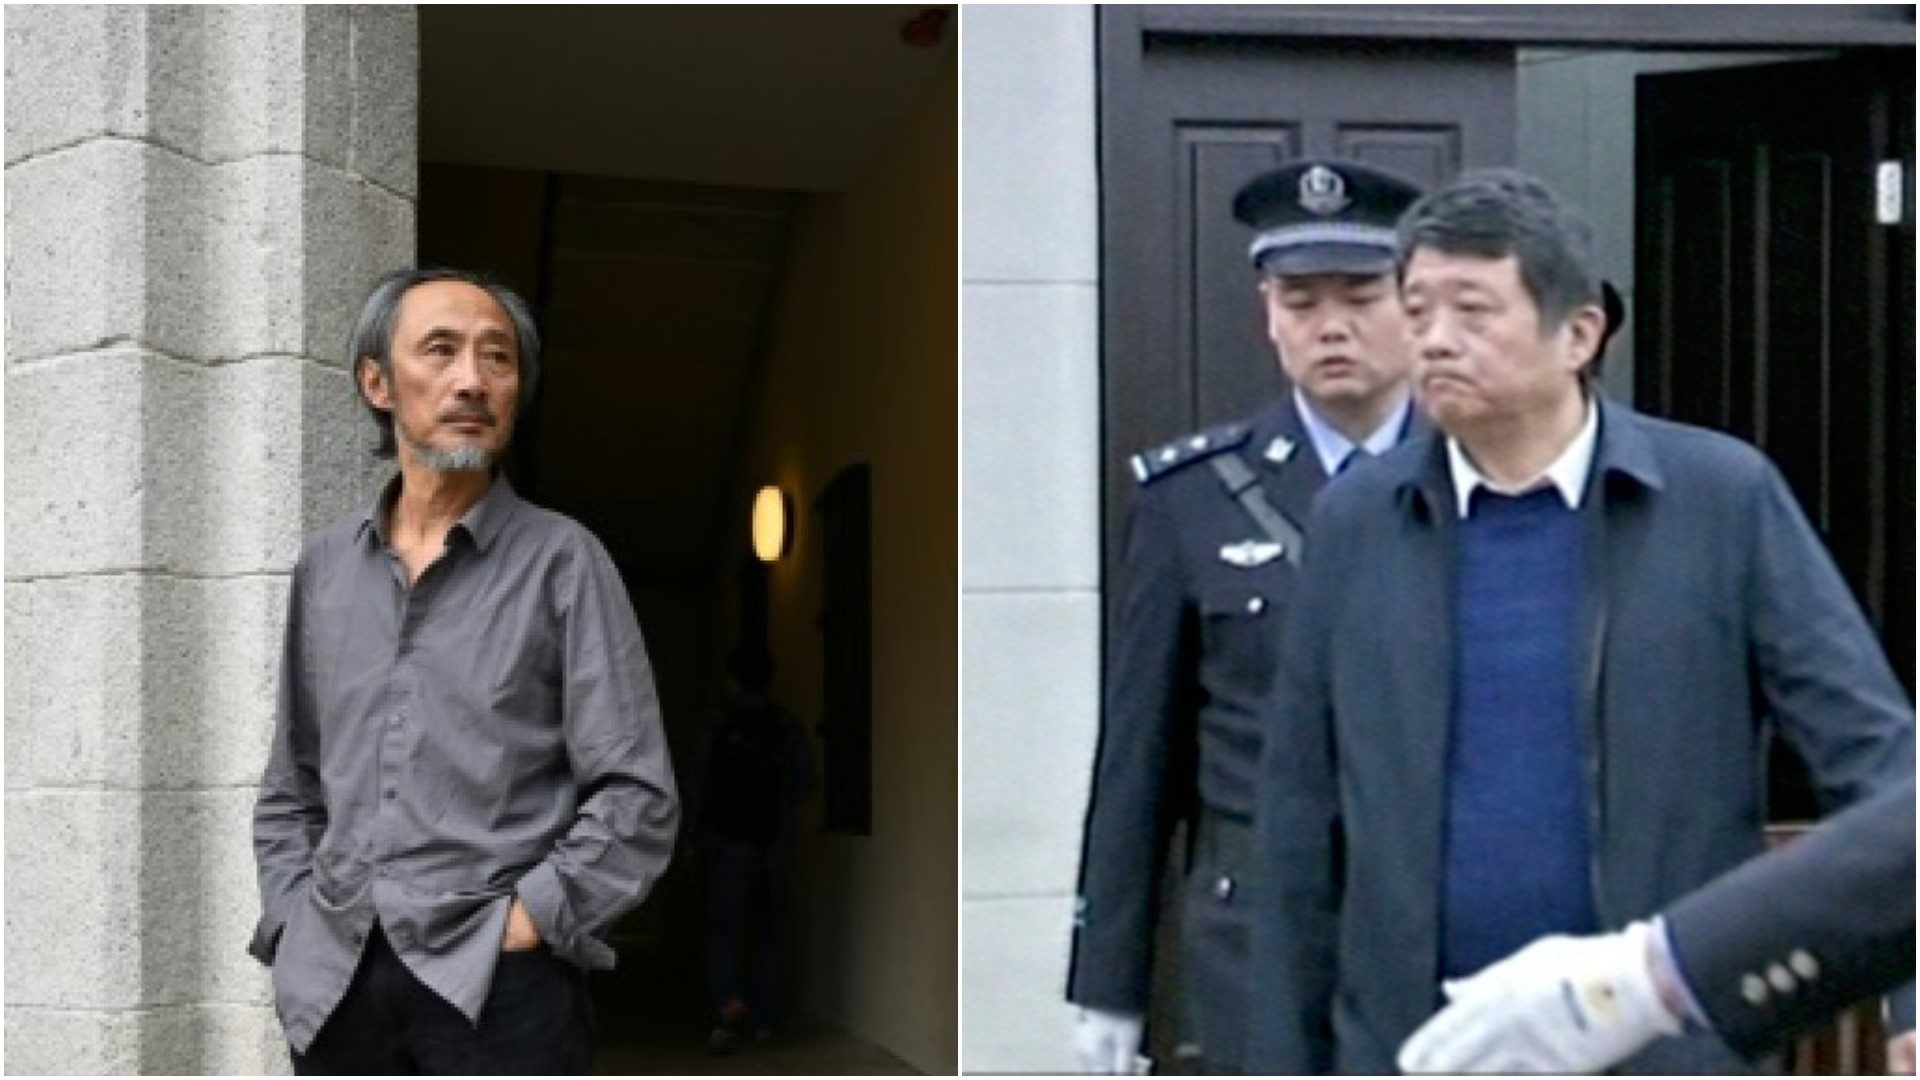 Exiled Chinese author Ma Jian (L) and  China's former deputy intelligence chief Ma Jian in a courtroom in this image made from Dec. 27, 2018 CCTV video. (AFP/AP Photos)